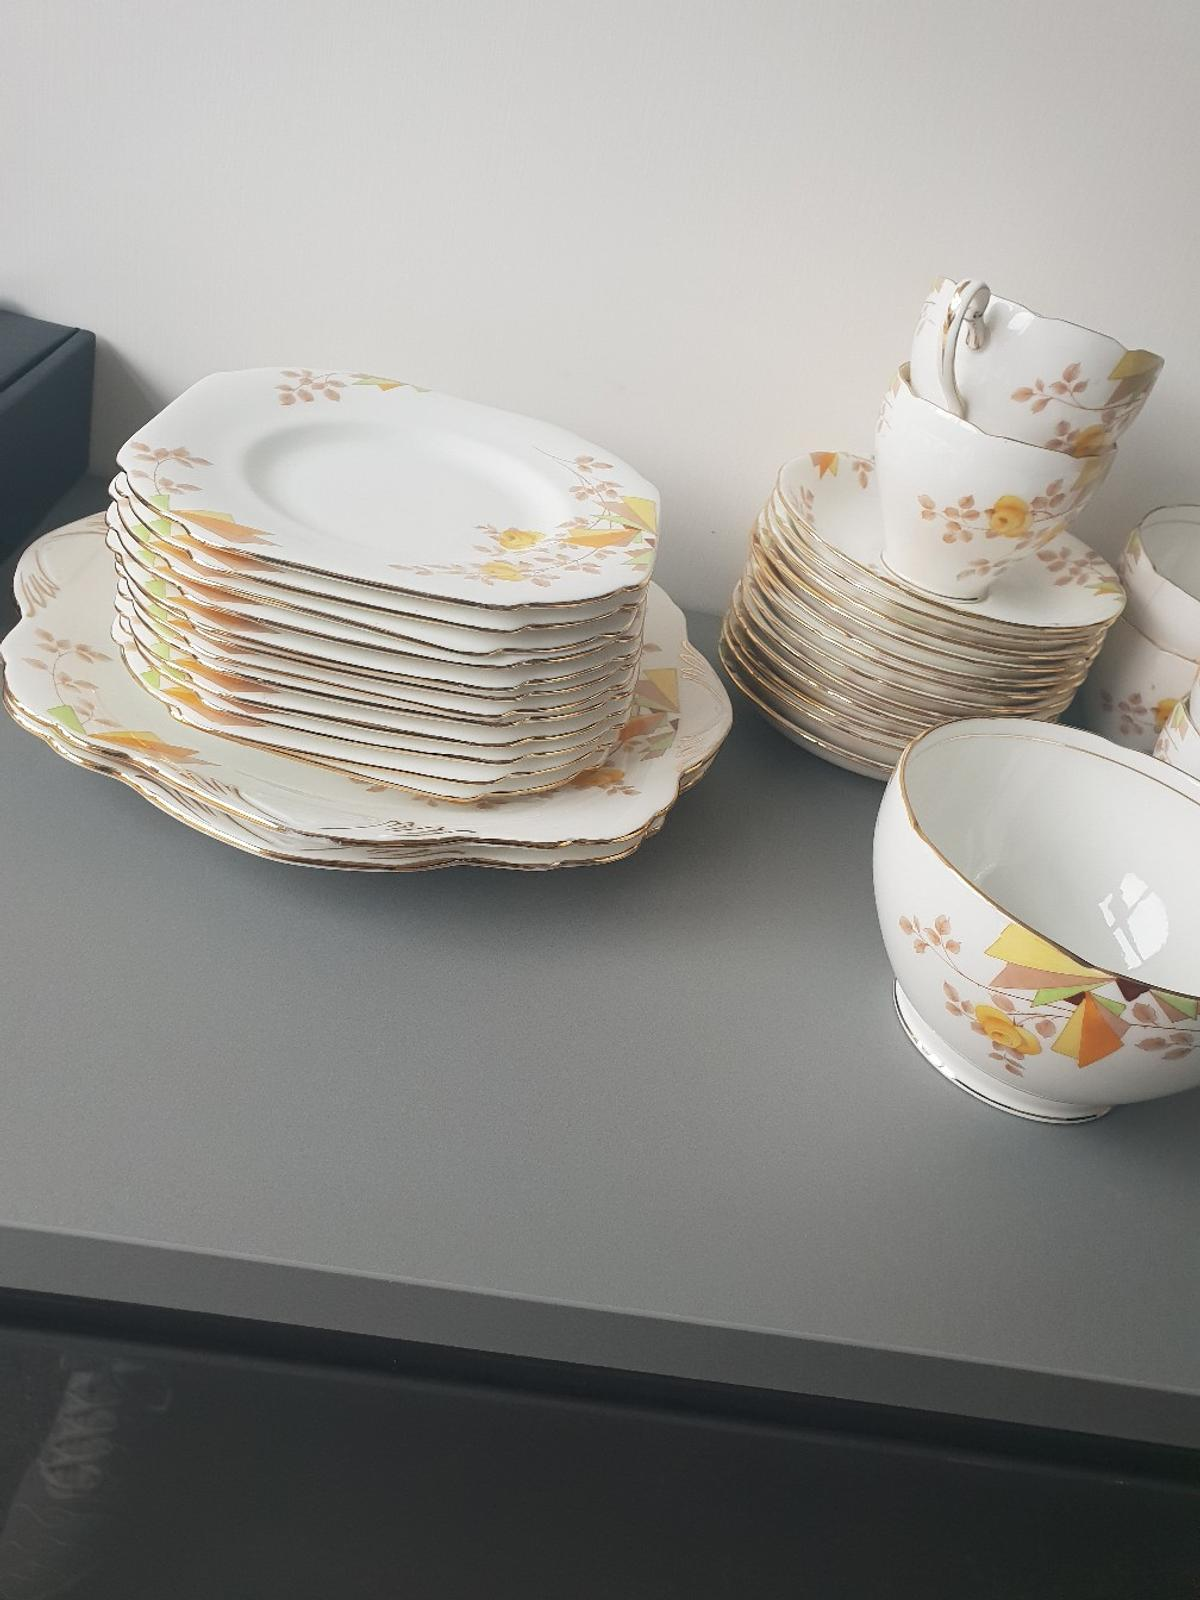 antique fine China, cups saucers plates in EH54 Pumpherston